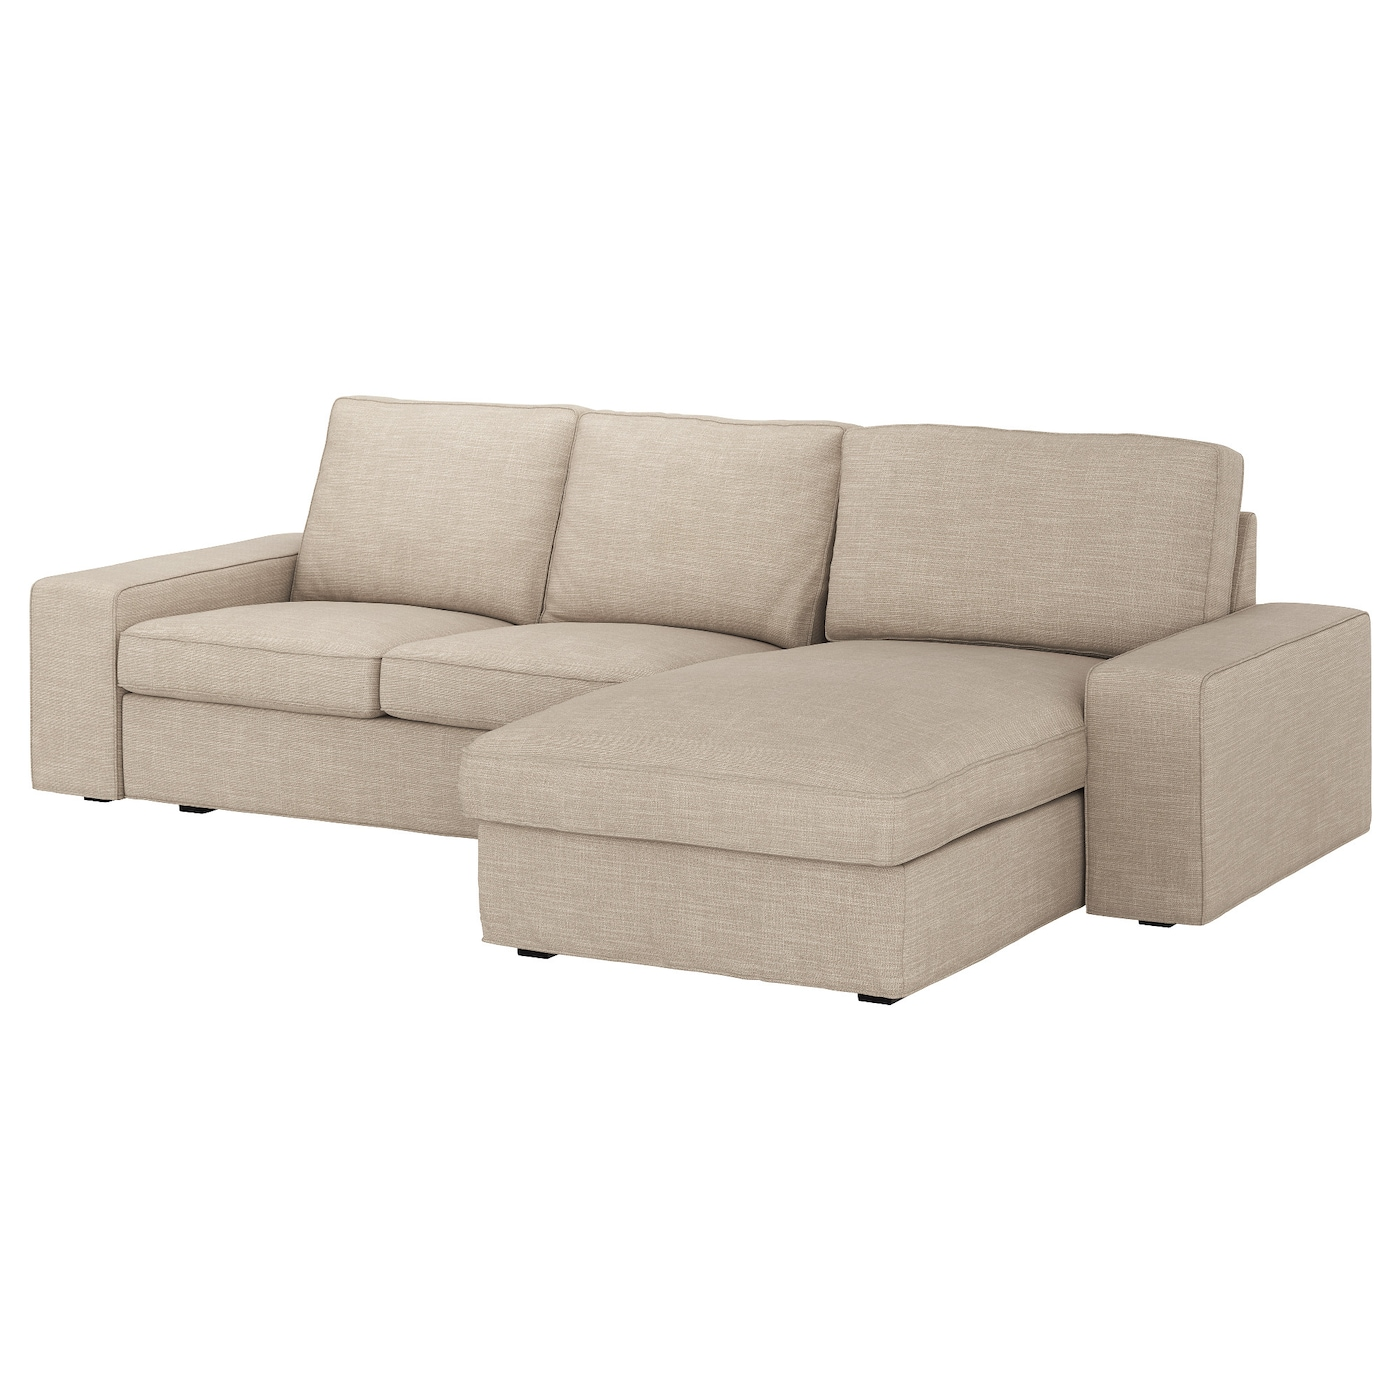 Kivik 3 seat sofa with chaise longue hillared beige ikea for Chaise and sofa